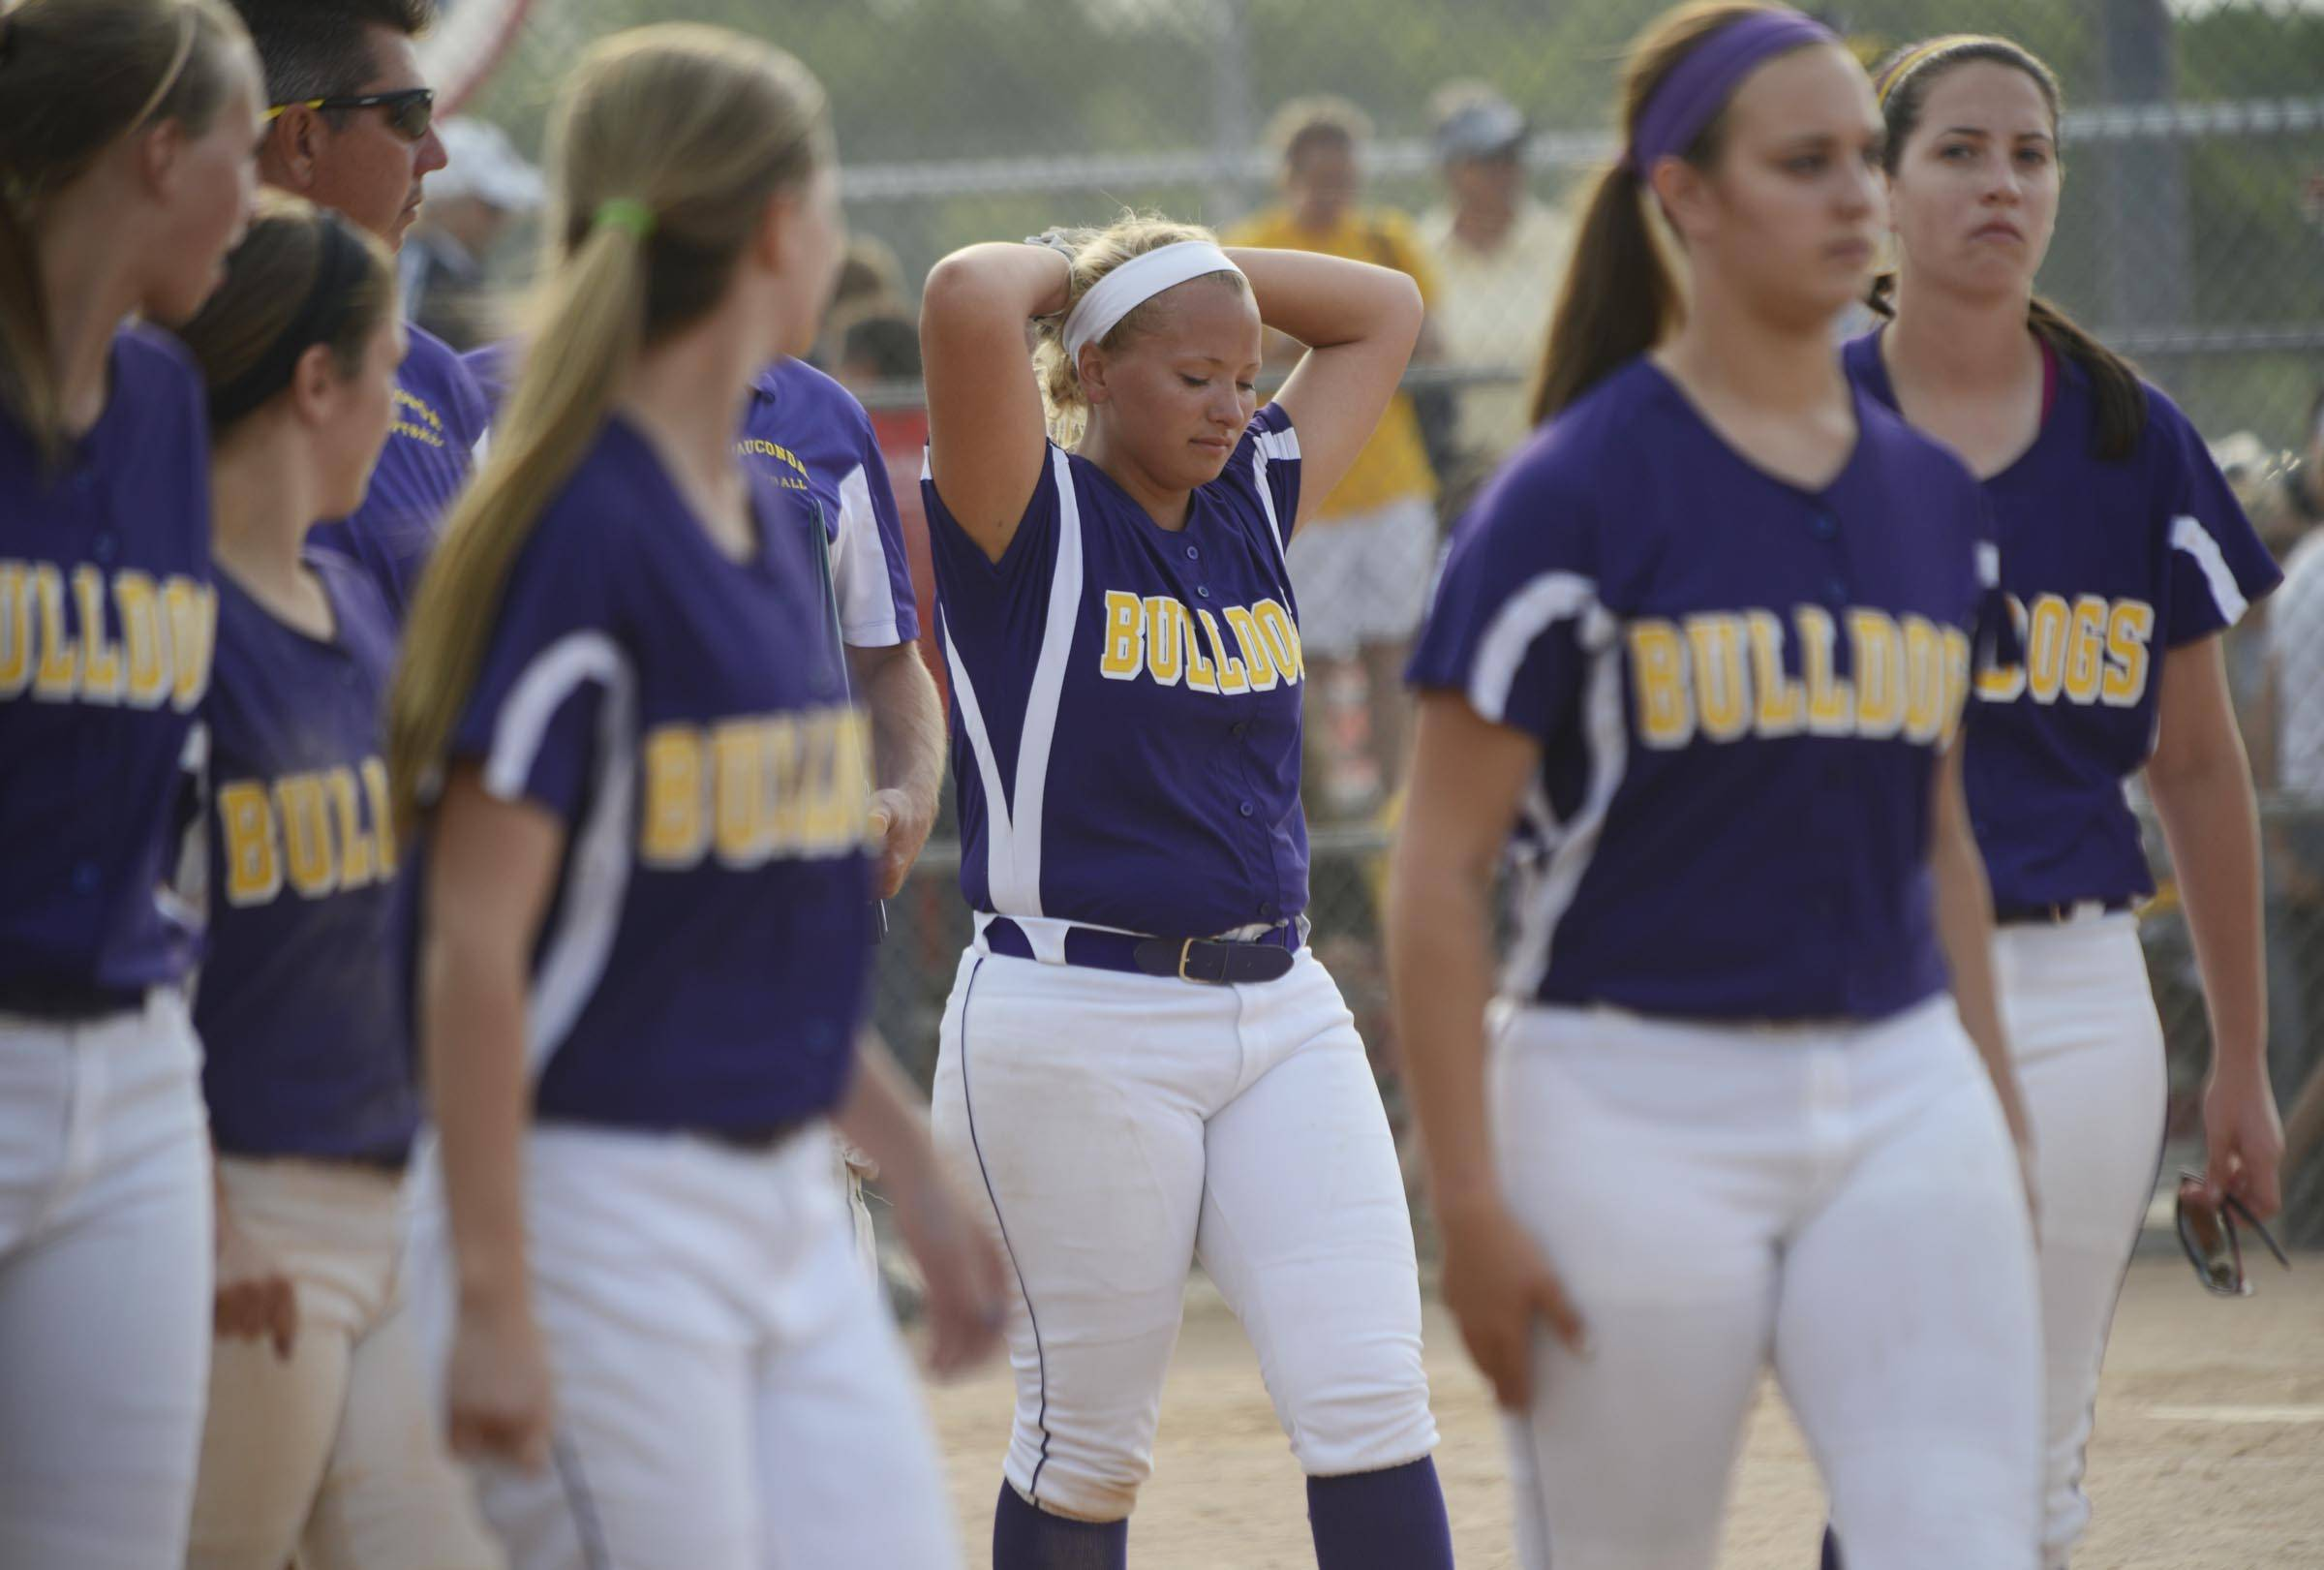 Wauconda's Angie Exline reacts as the team gathers after losing to Sterling in the Class 3A Barrington supersectional Monday.